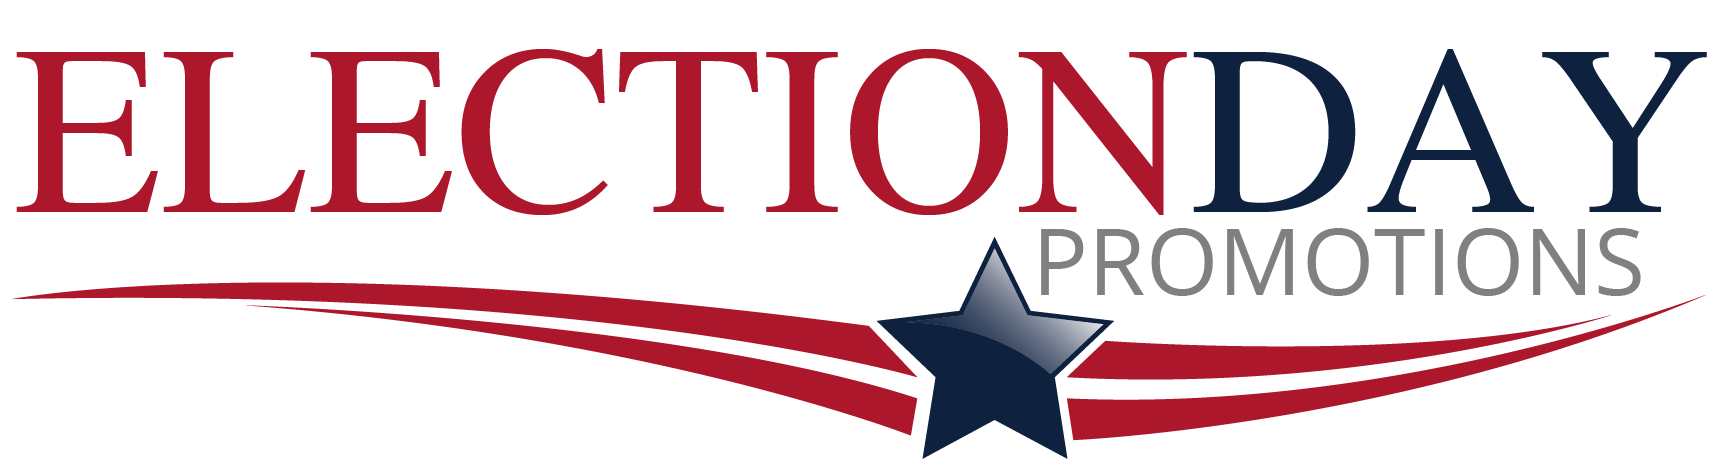 Election Day Promotions Company Logo